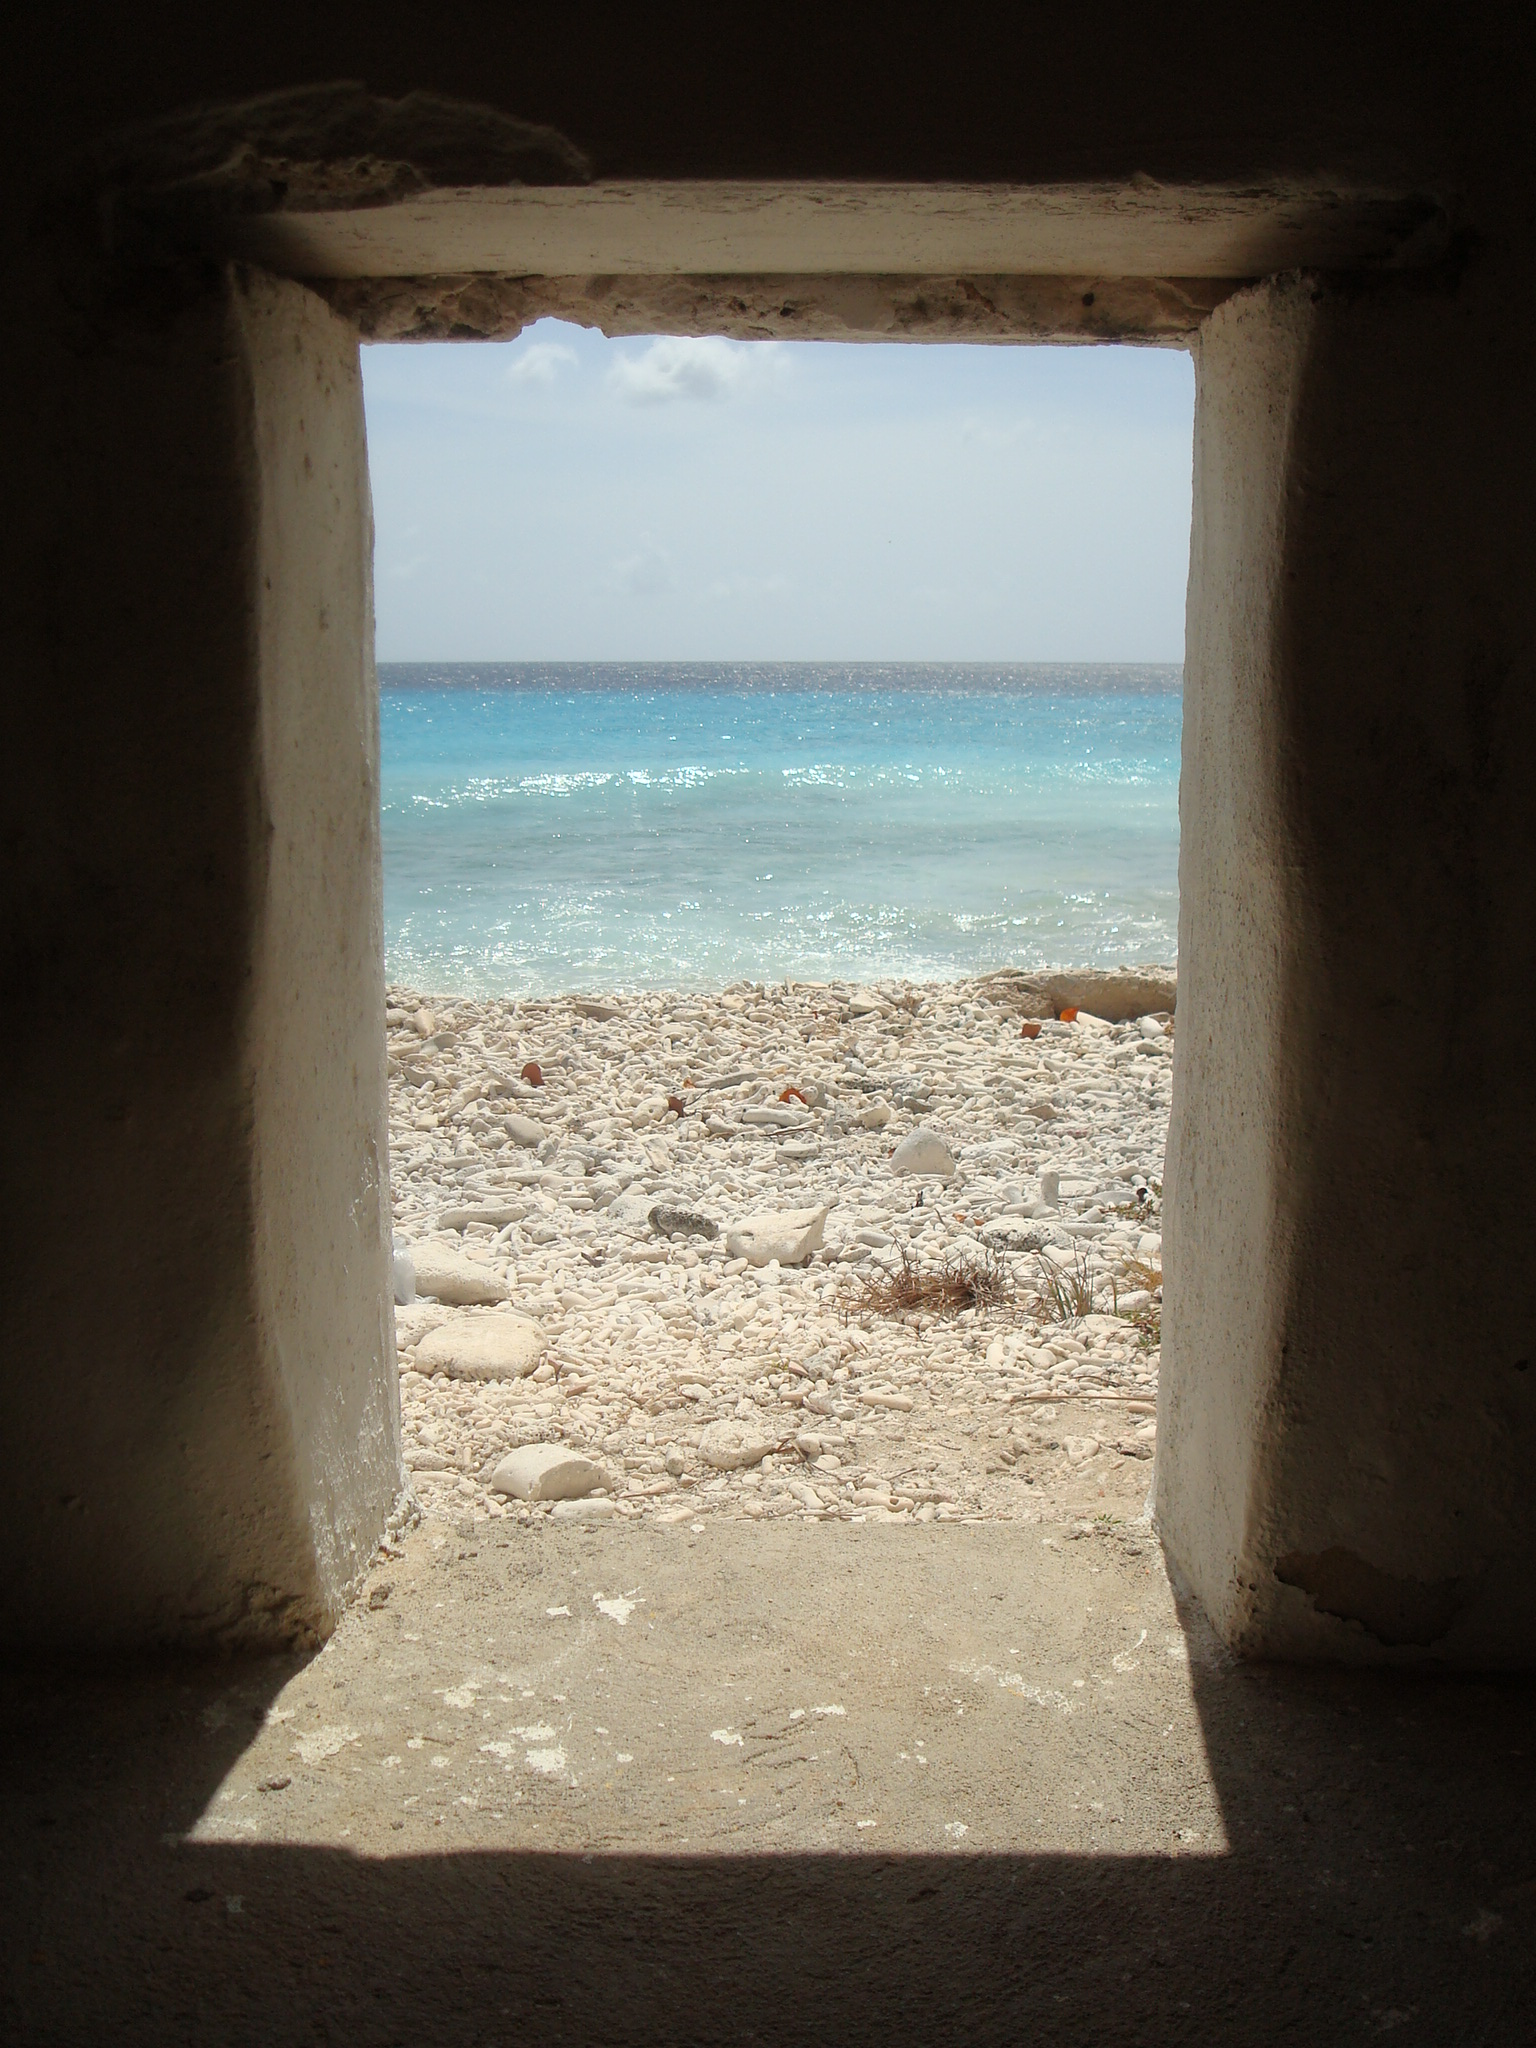 Sea view from a slave hut in Bonaire